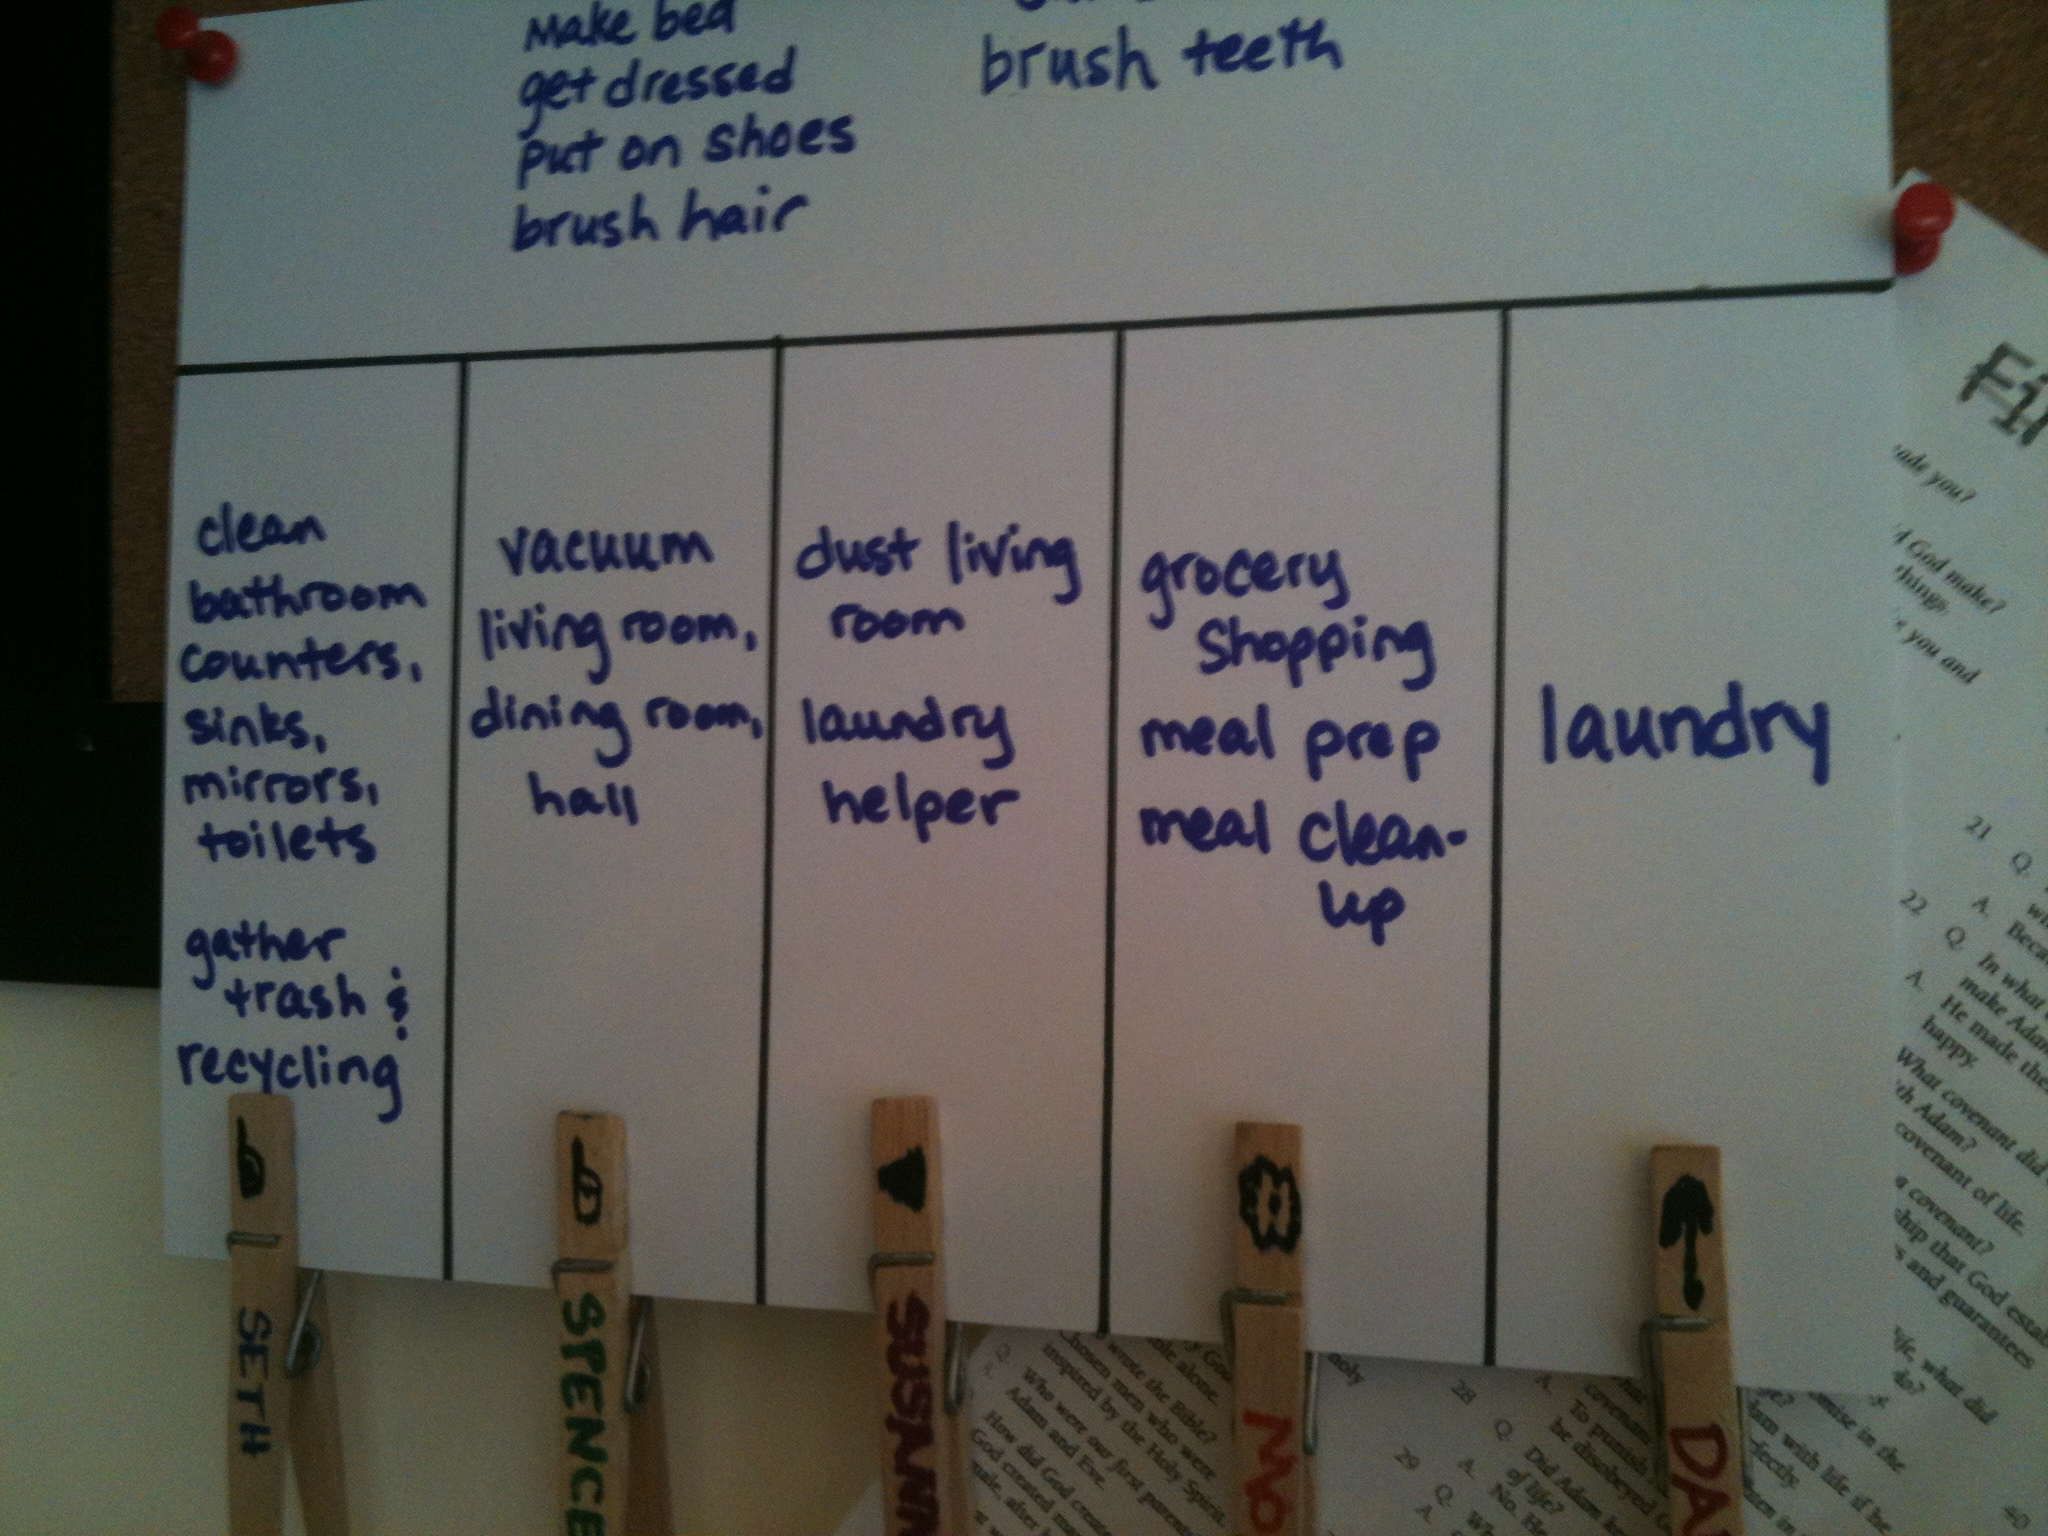 Back to school routines: chore chart